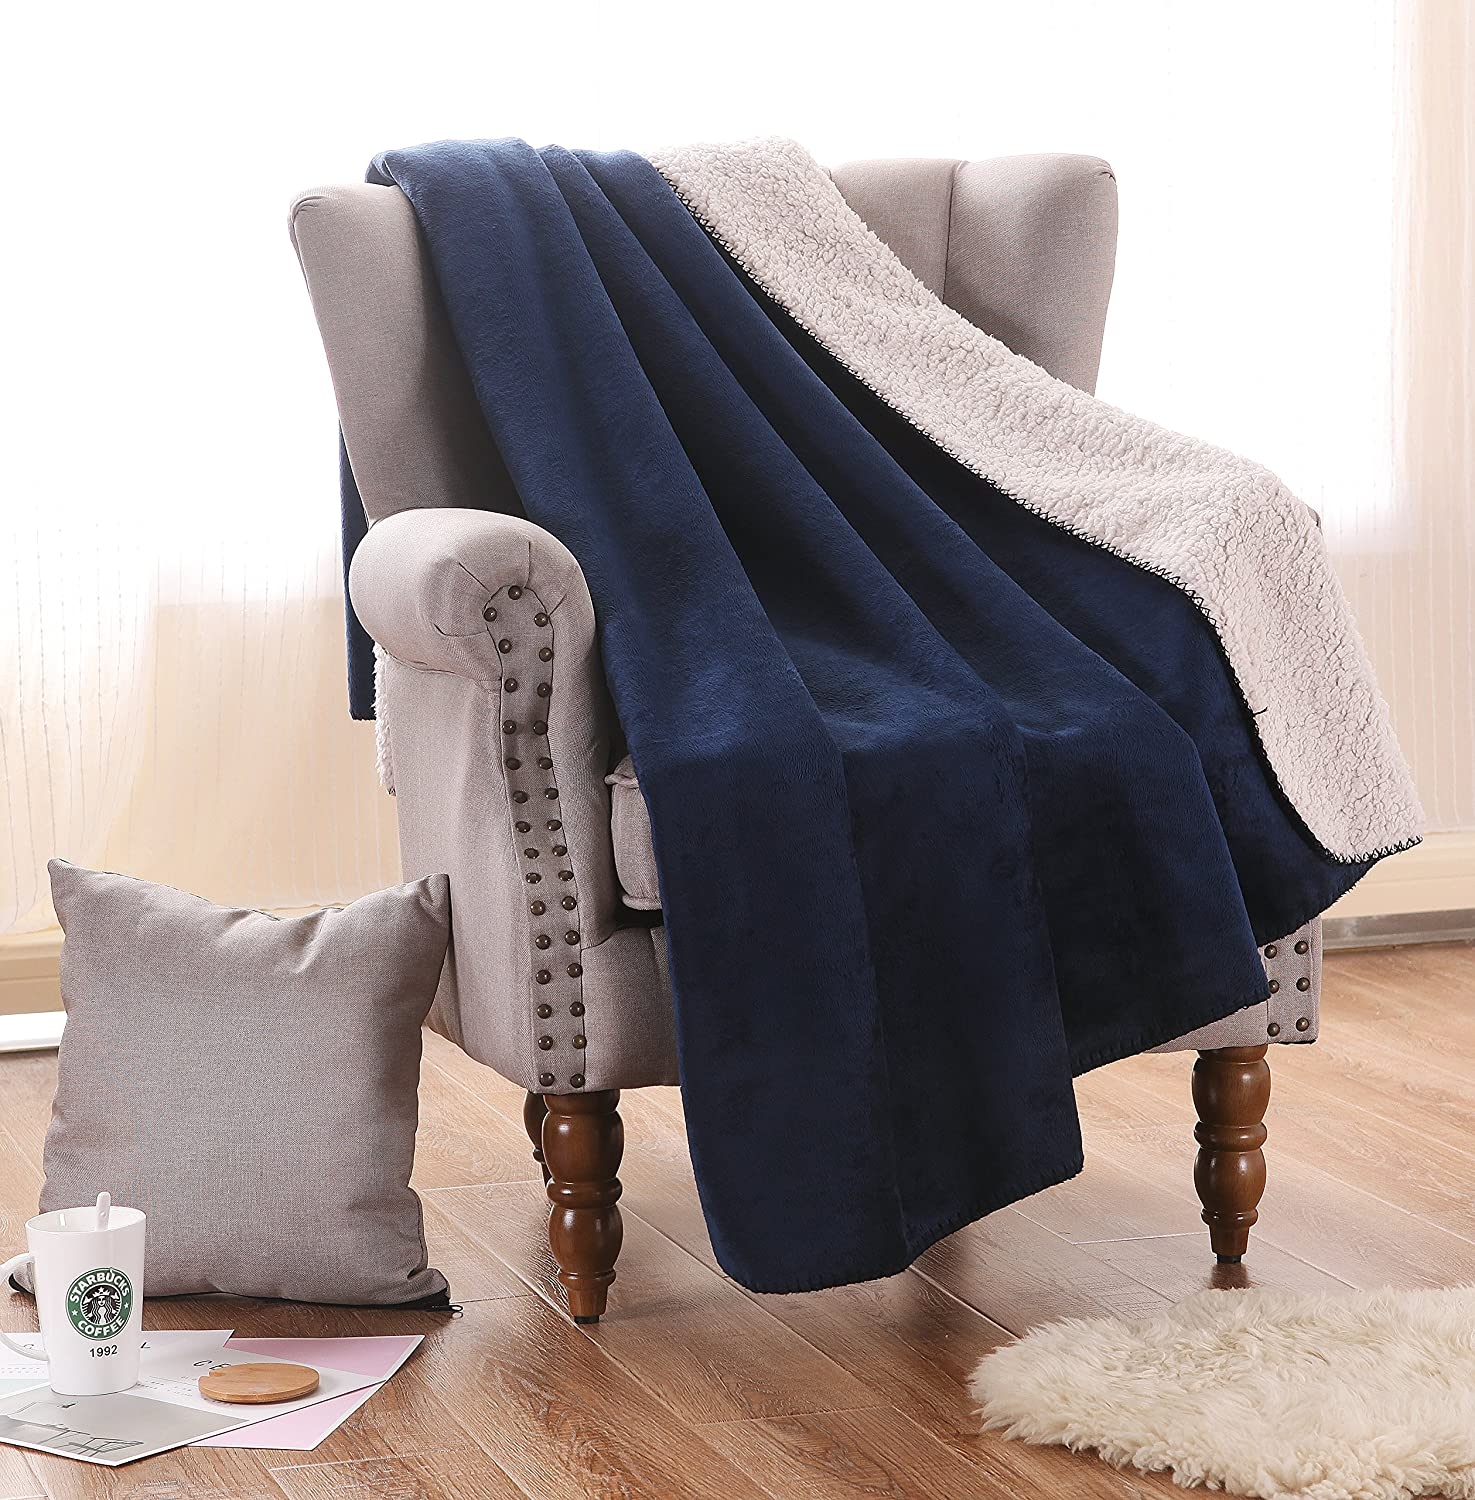 Luxury Reversible Fuzzy Sherpa Throw Blanket, Soft and Cozy Dark Blue by Exclusivo Mezcla